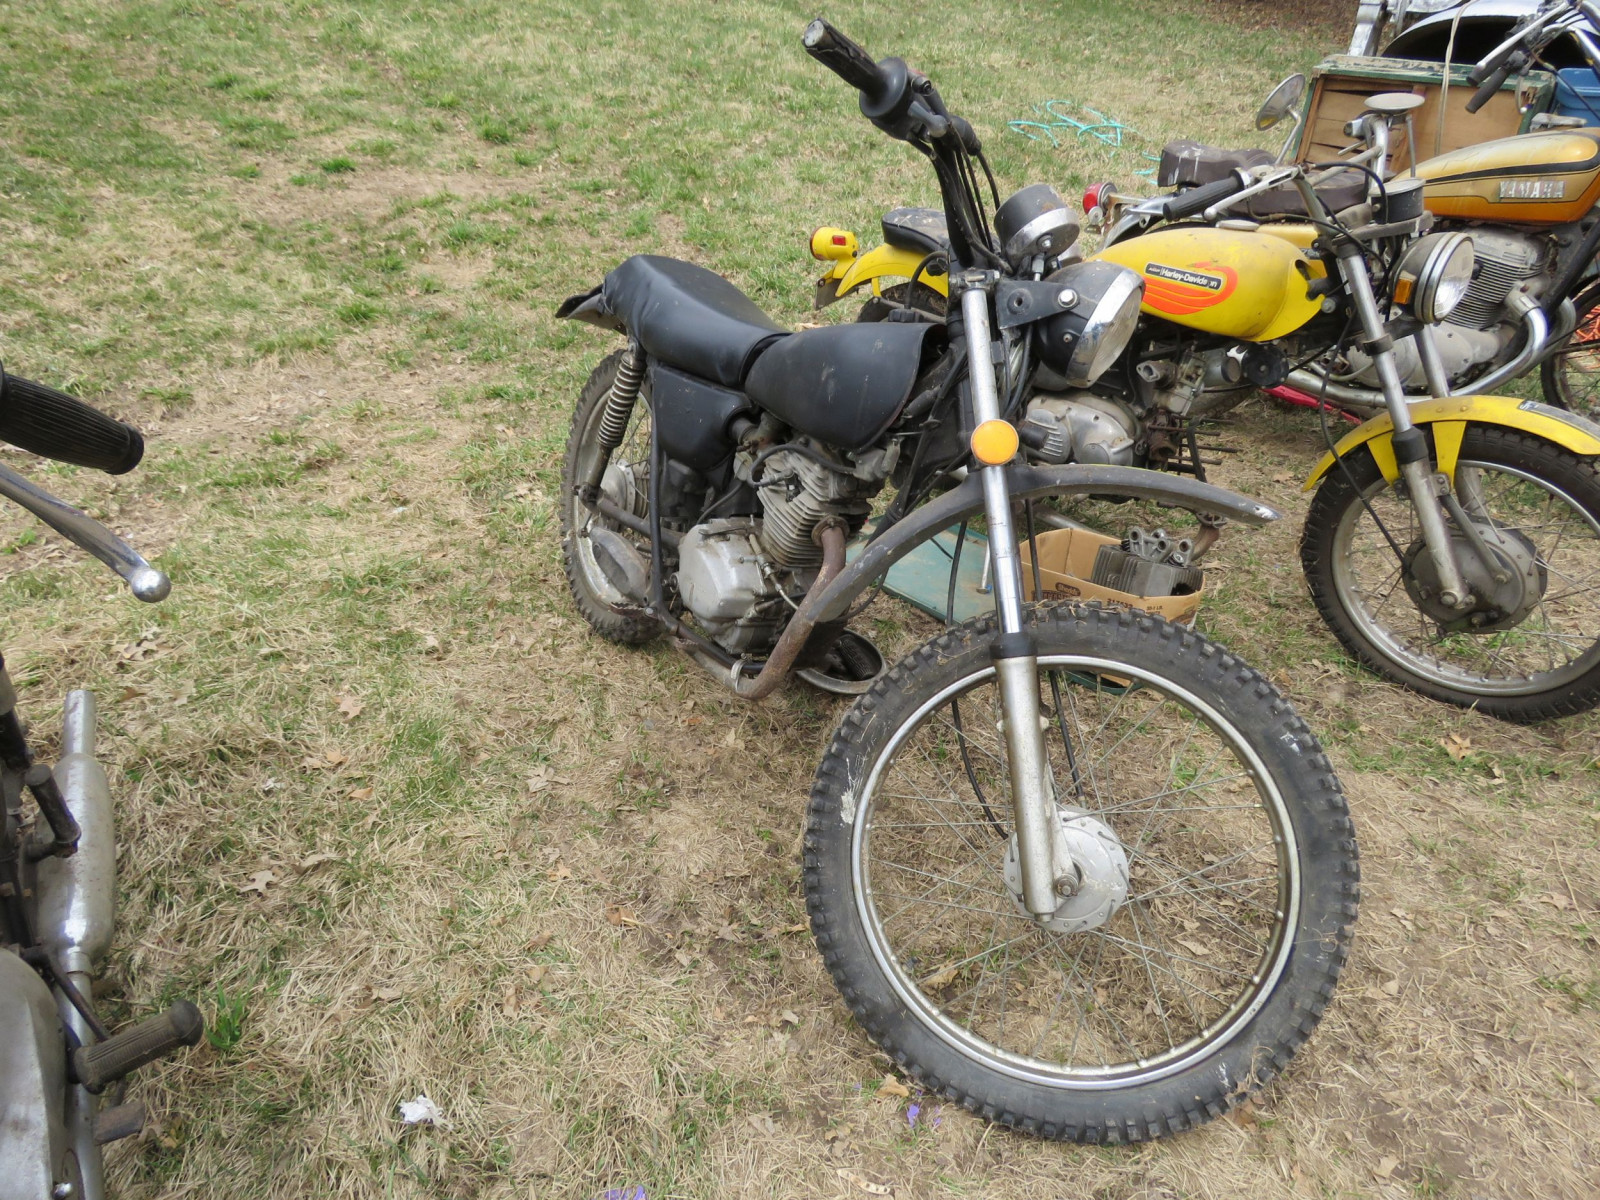 Honda 125XL Motorcycle for Project or parts - Image 1